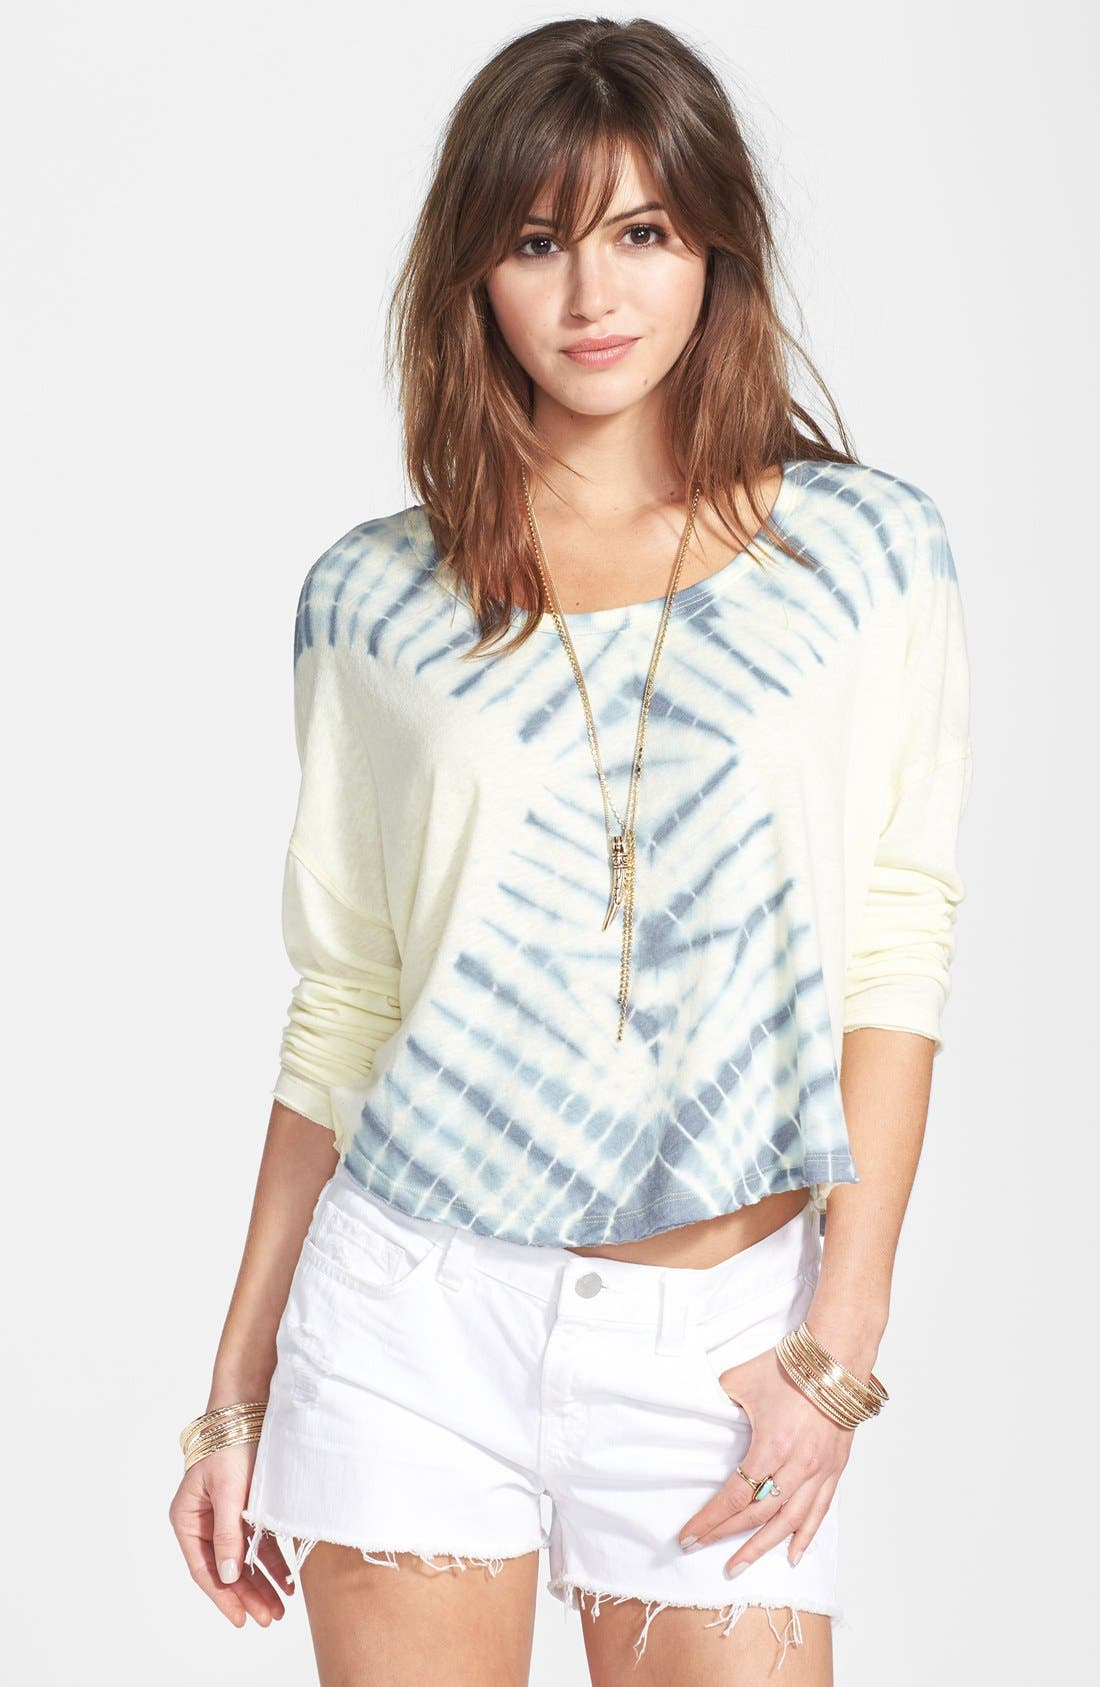 Alternate Image 1 Selected - Free People 'Sundown' Tie Dye Cotton Blend Top